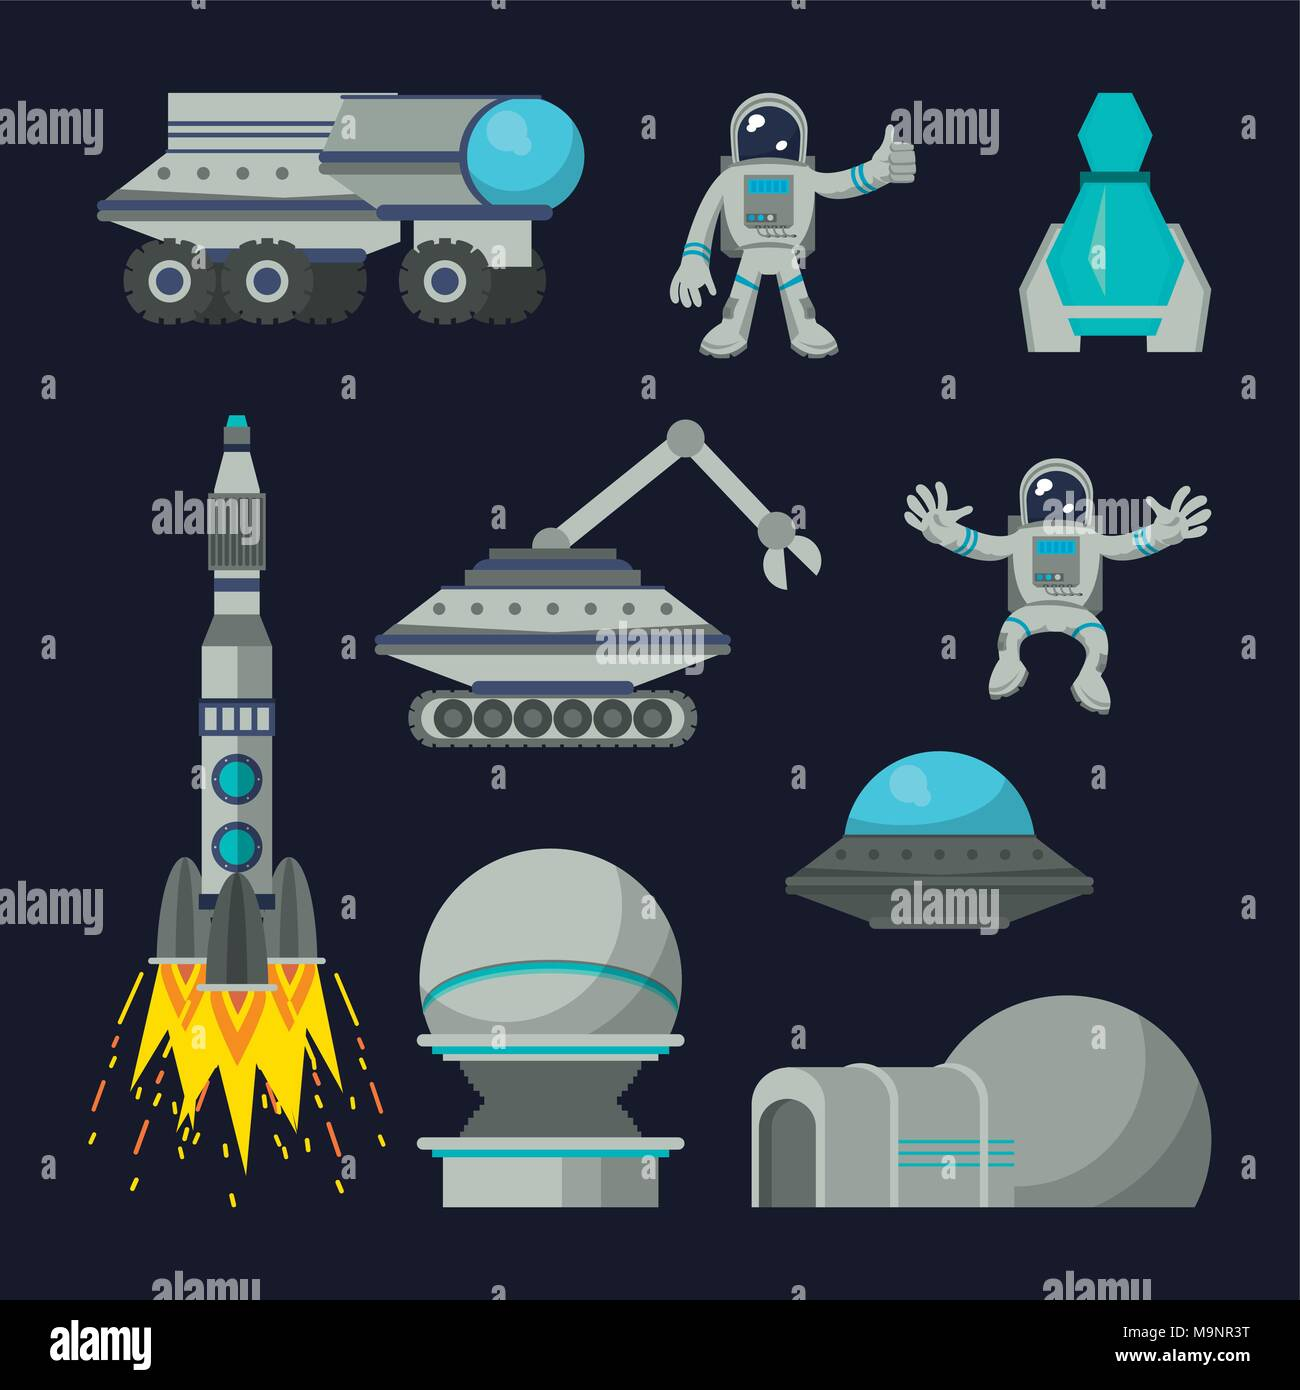 Space exploration technologies - Stock Image